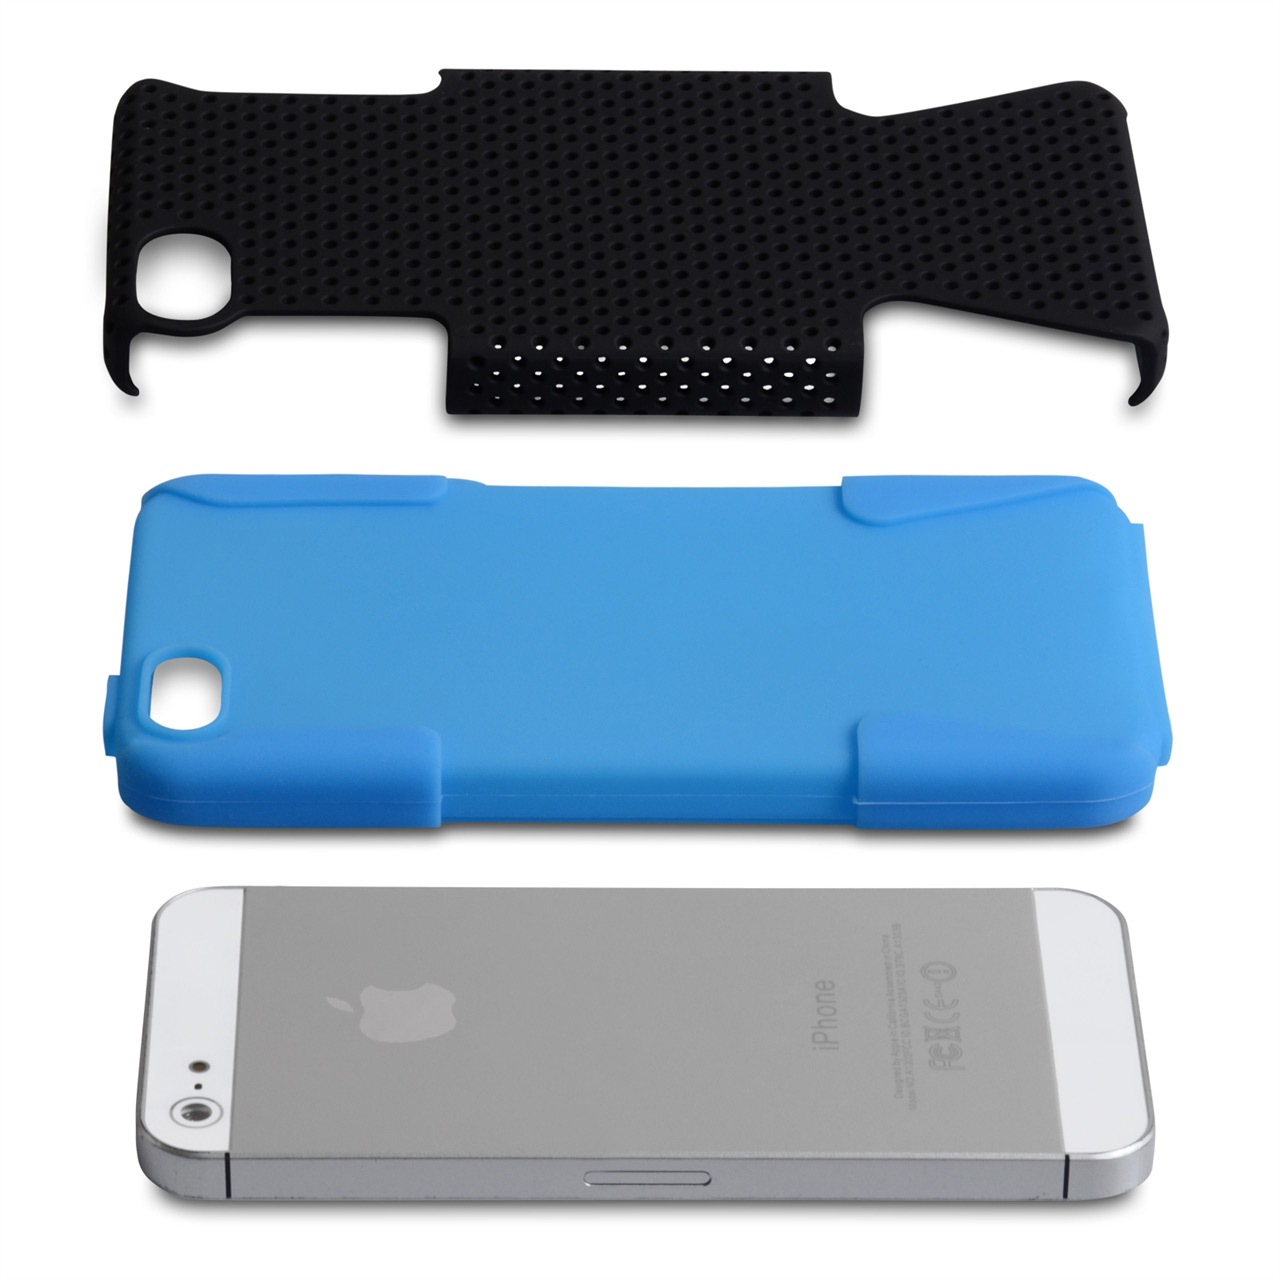 YouSave Accessories iPhone 5 / 5S Mesh Combo Case - Blue